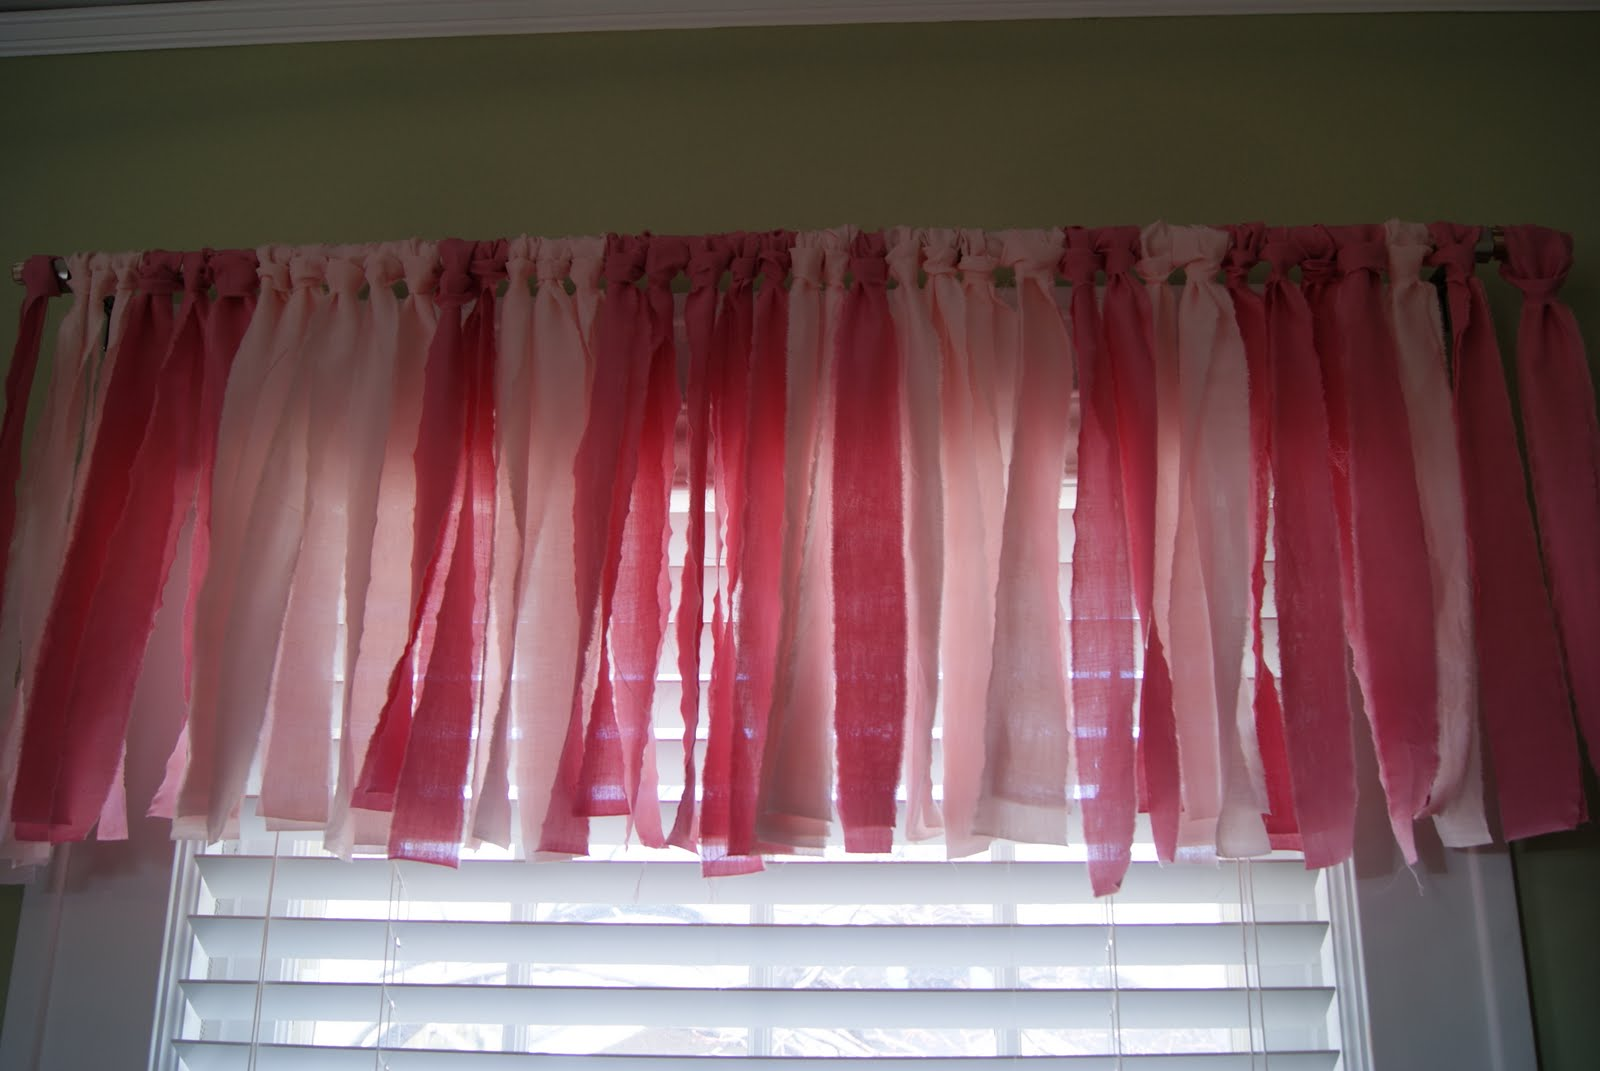 images of fabric strips turned into curtain valance wallpaper